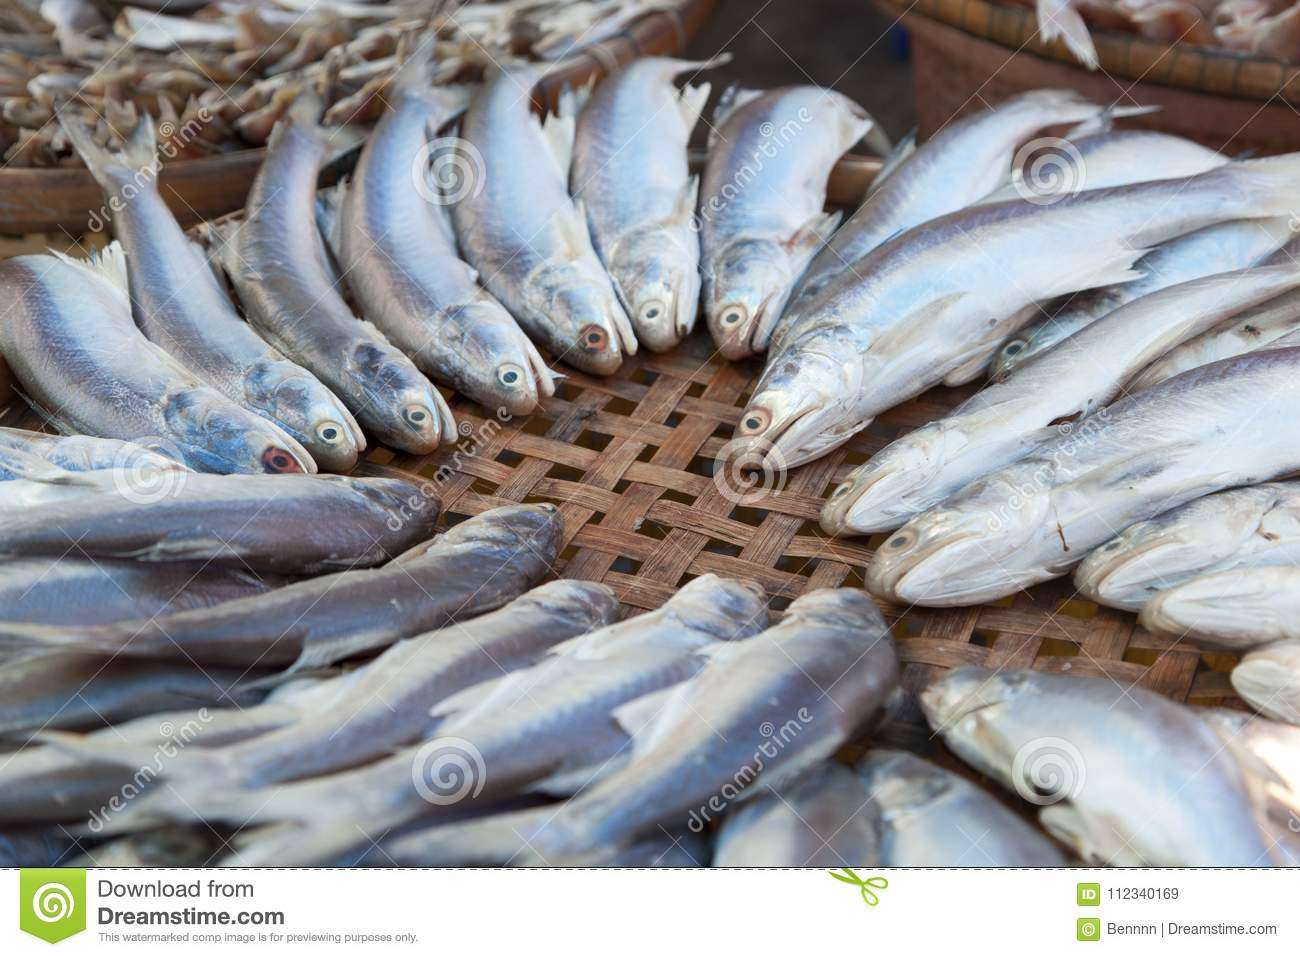 Drying Fish In The Sun For Food Preservation Stock Image Image Of Nature Ingredient 112340169